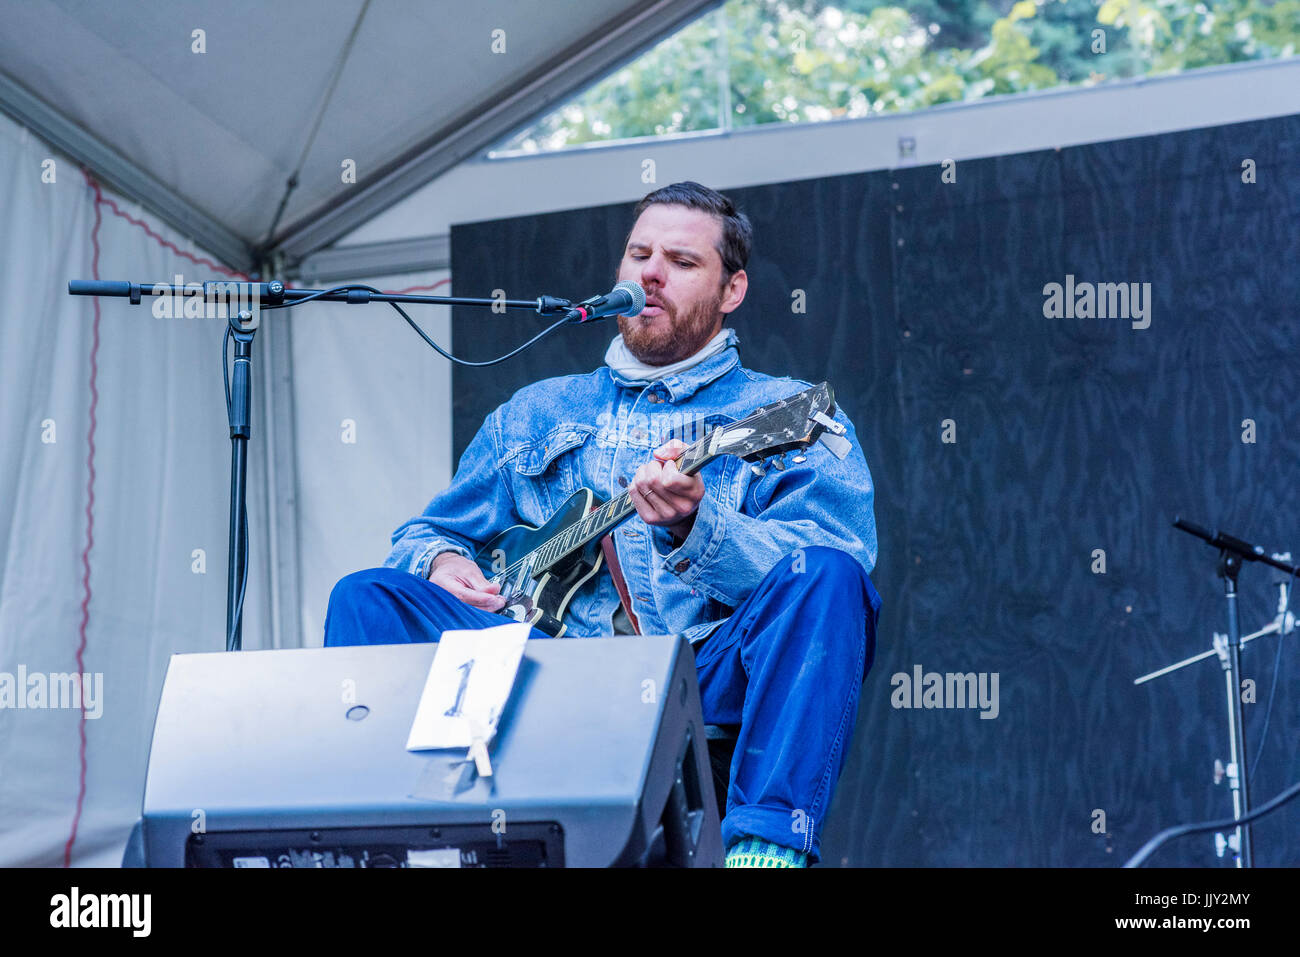 Bahamas plays at 40th Annual Vancouver Folk Music Festival, Vancouver, British Columbia, Canada. - Stock Image